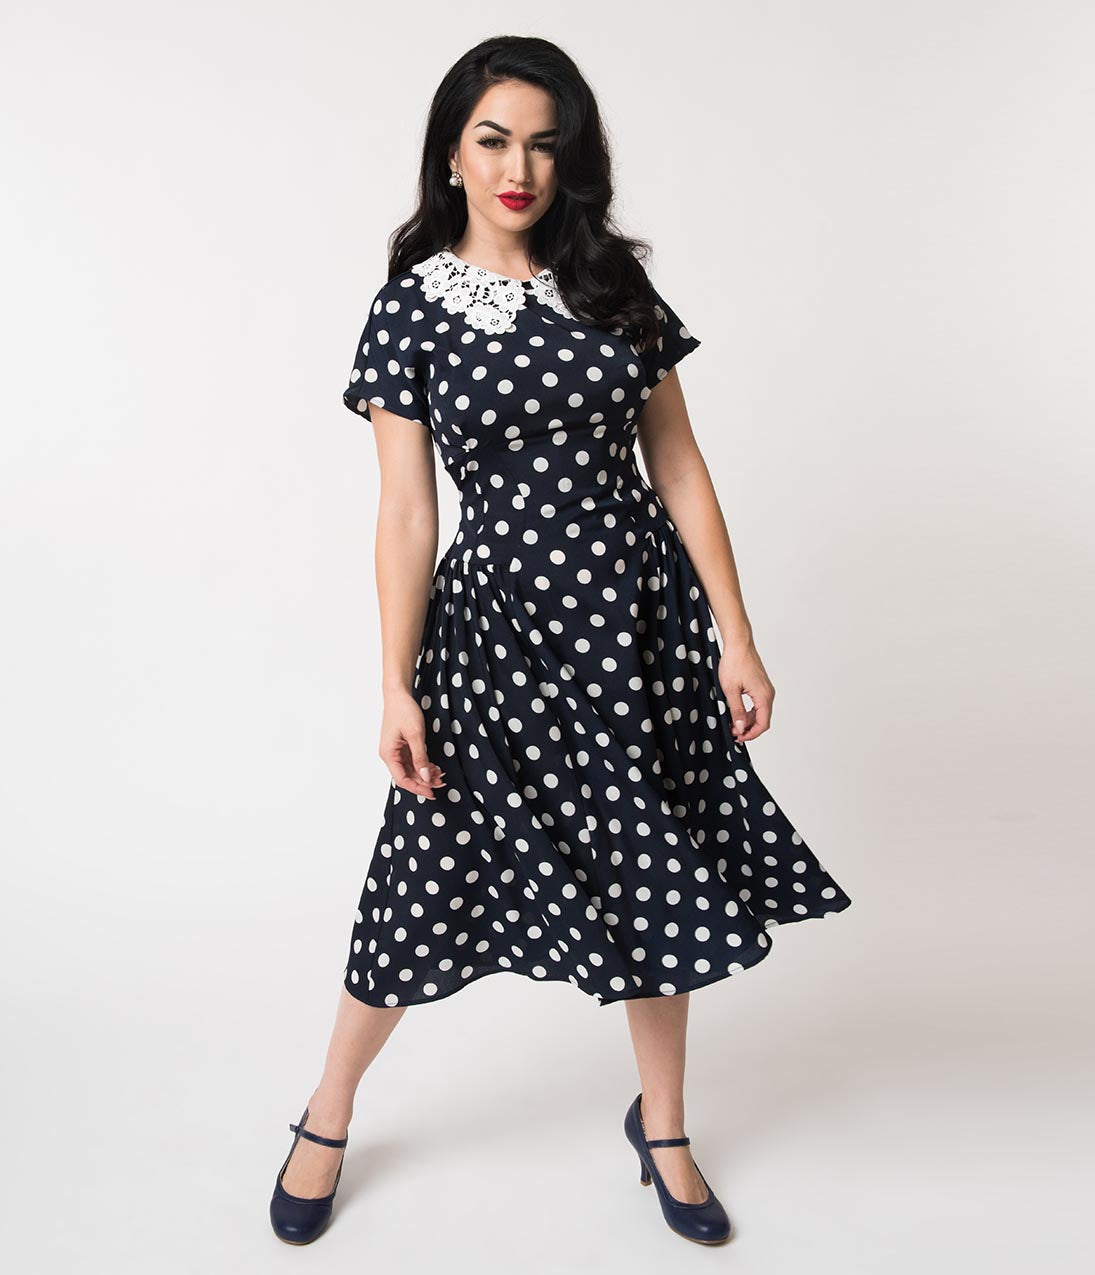 Outfits for Women Vintage Dress